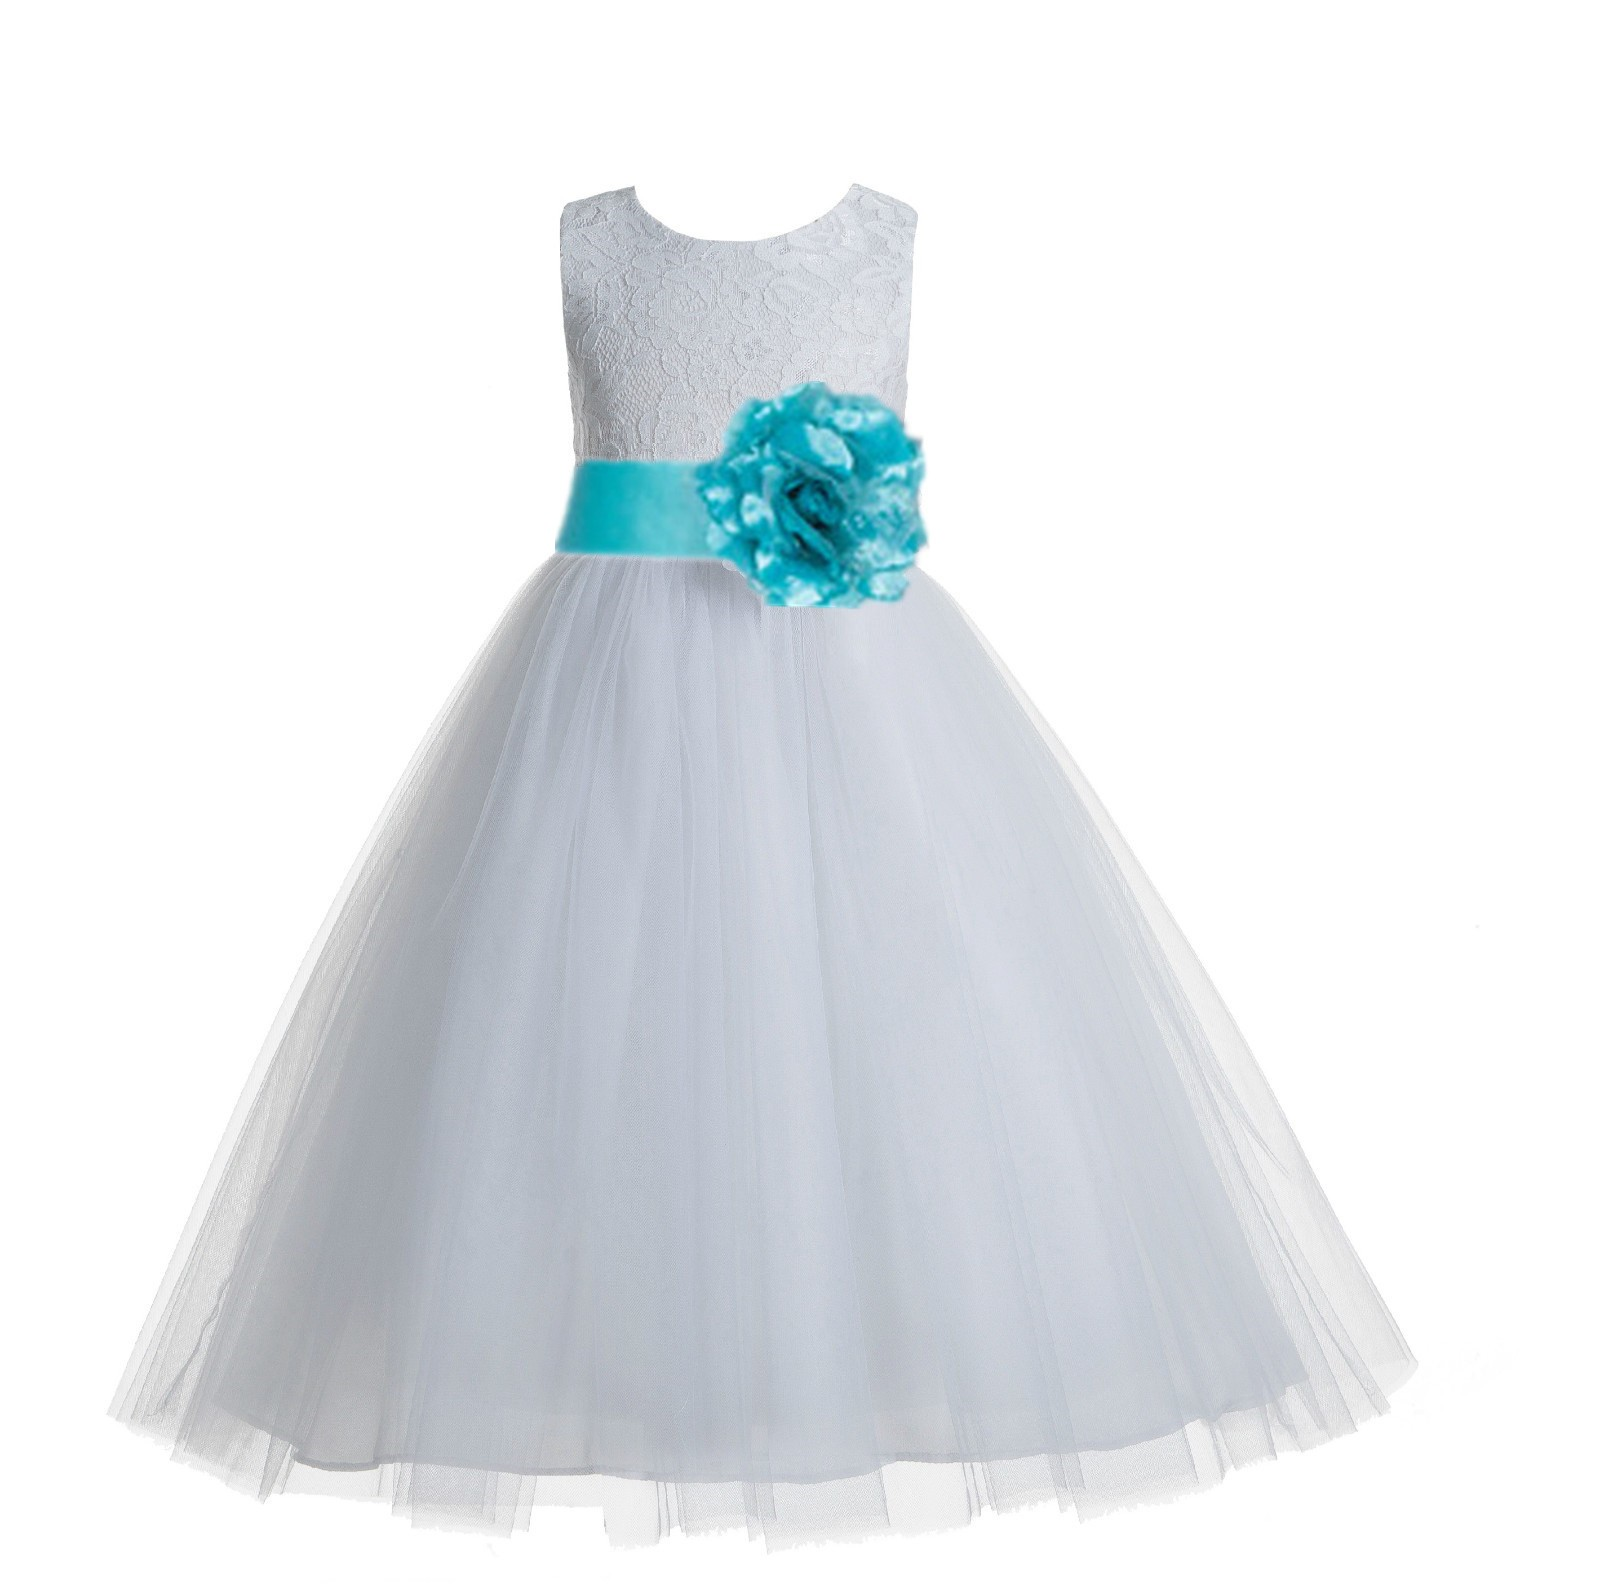 White Tiffany Blue Floral Lace Heart Cutout Flower Girl Dress With